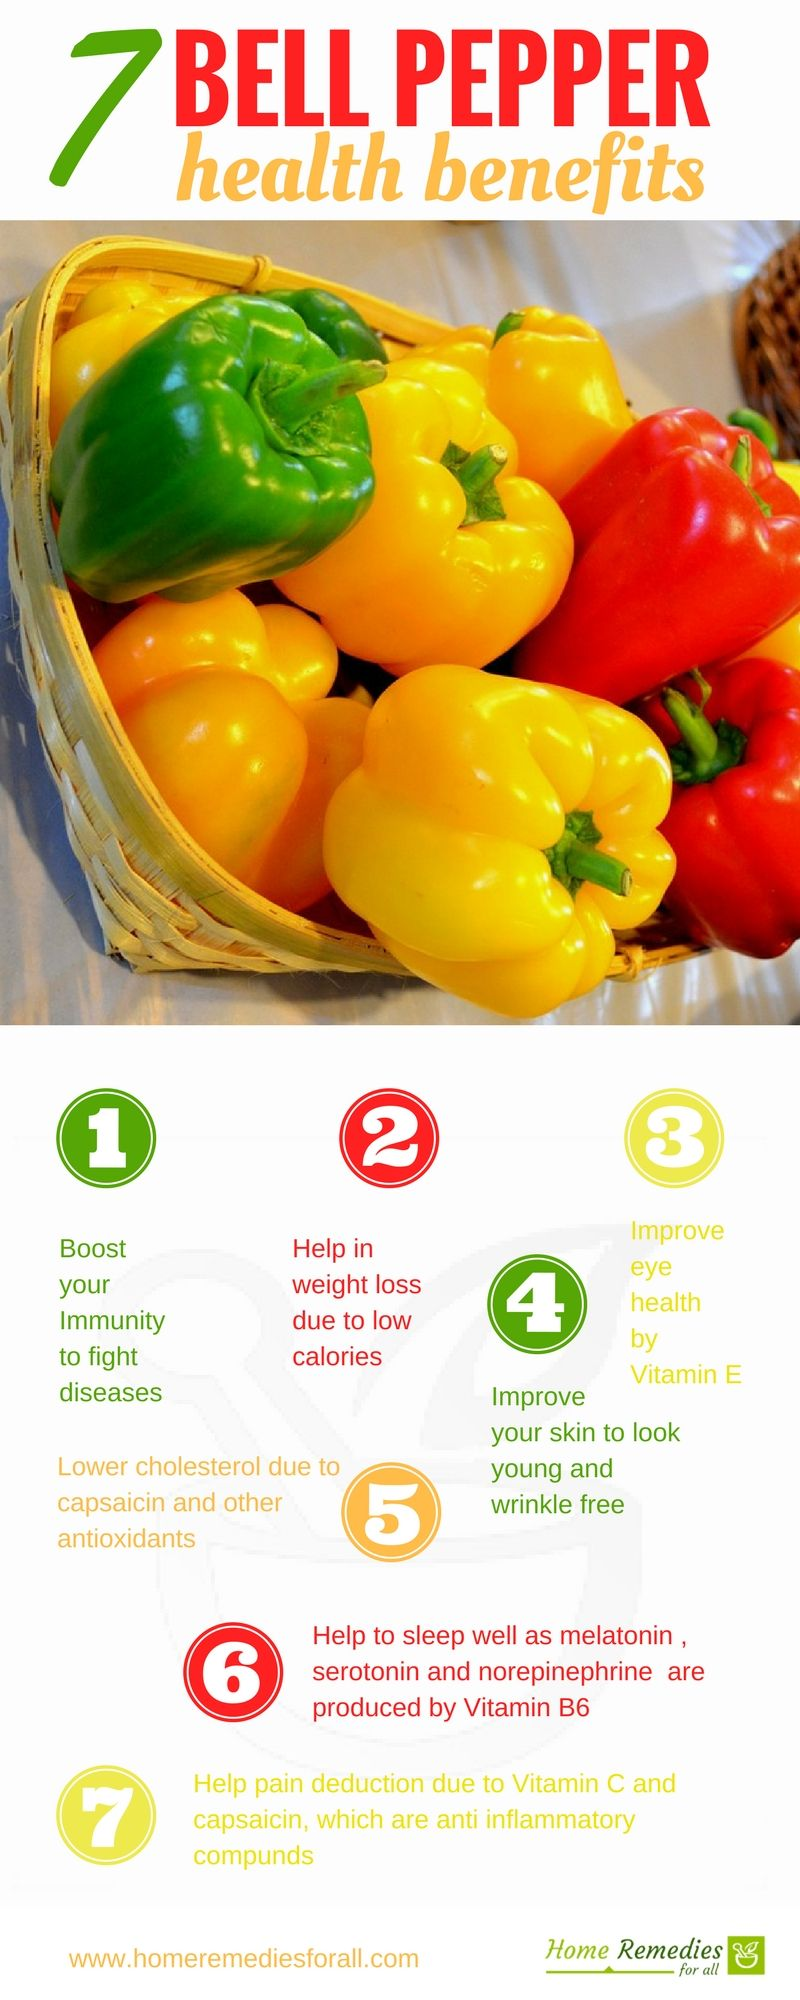 Eat a bell pepper daily as it offers amazing health